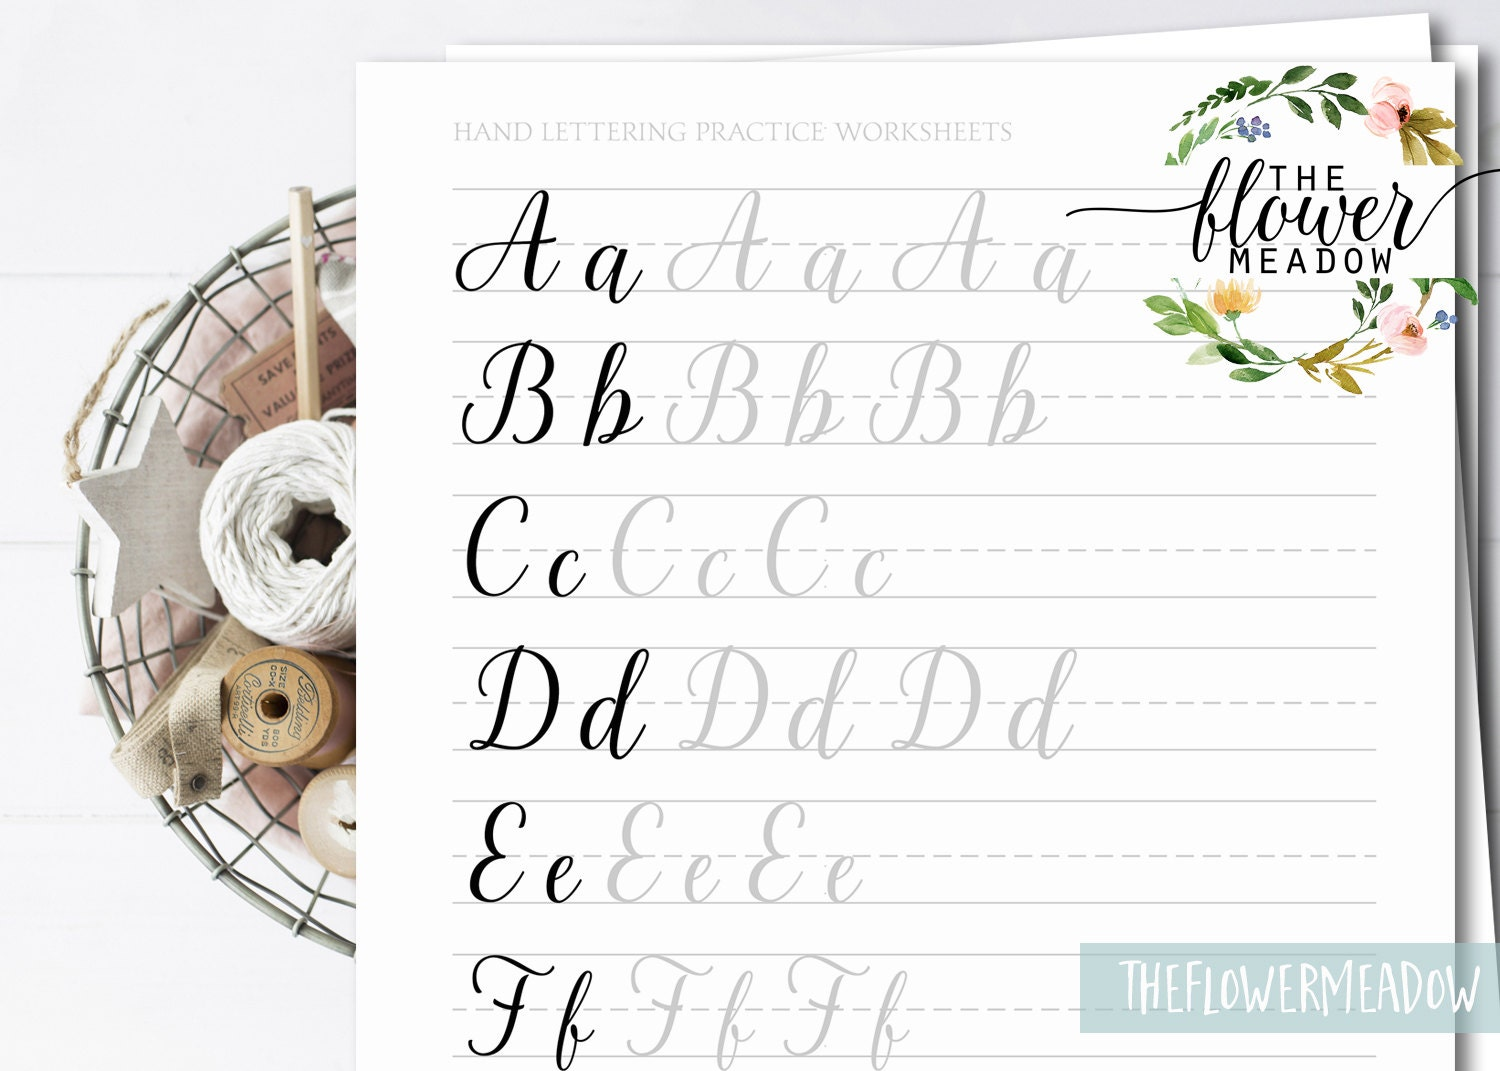 how to hand letter lettering practice learn calligraphy lettering guide 10514 | il fullxfull.1153412315 8fj5